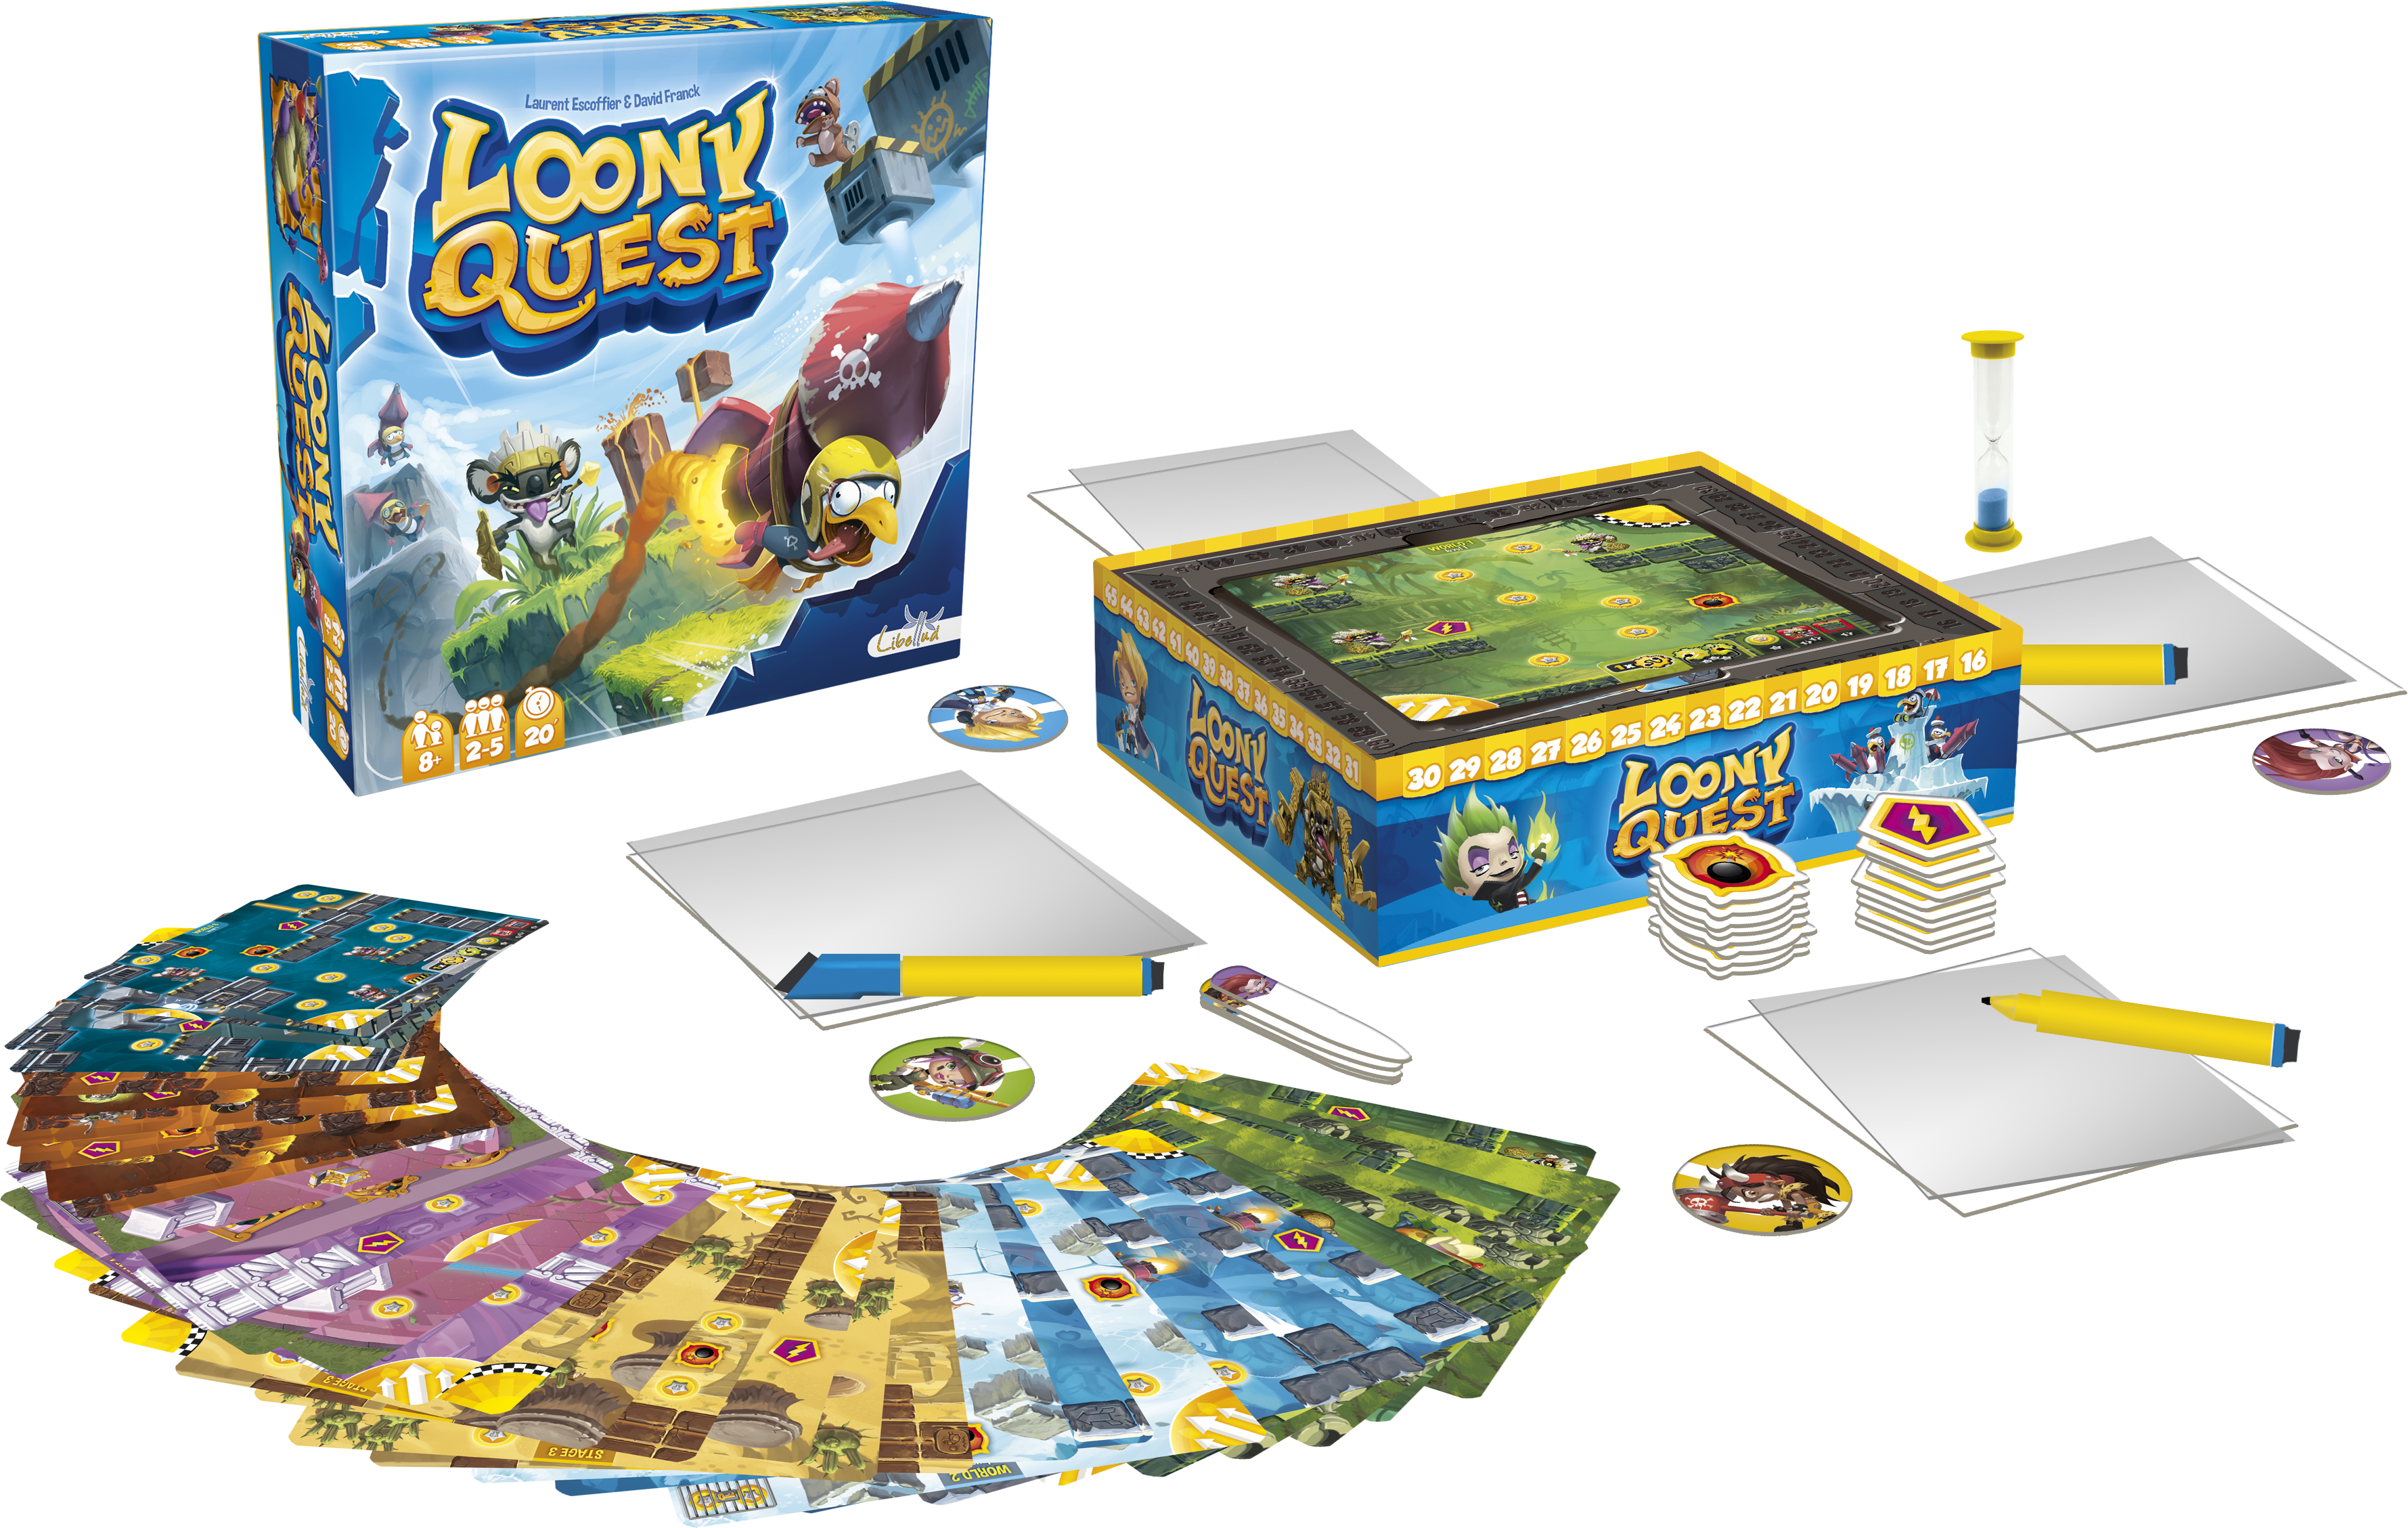 Loony Quest Boxeclate